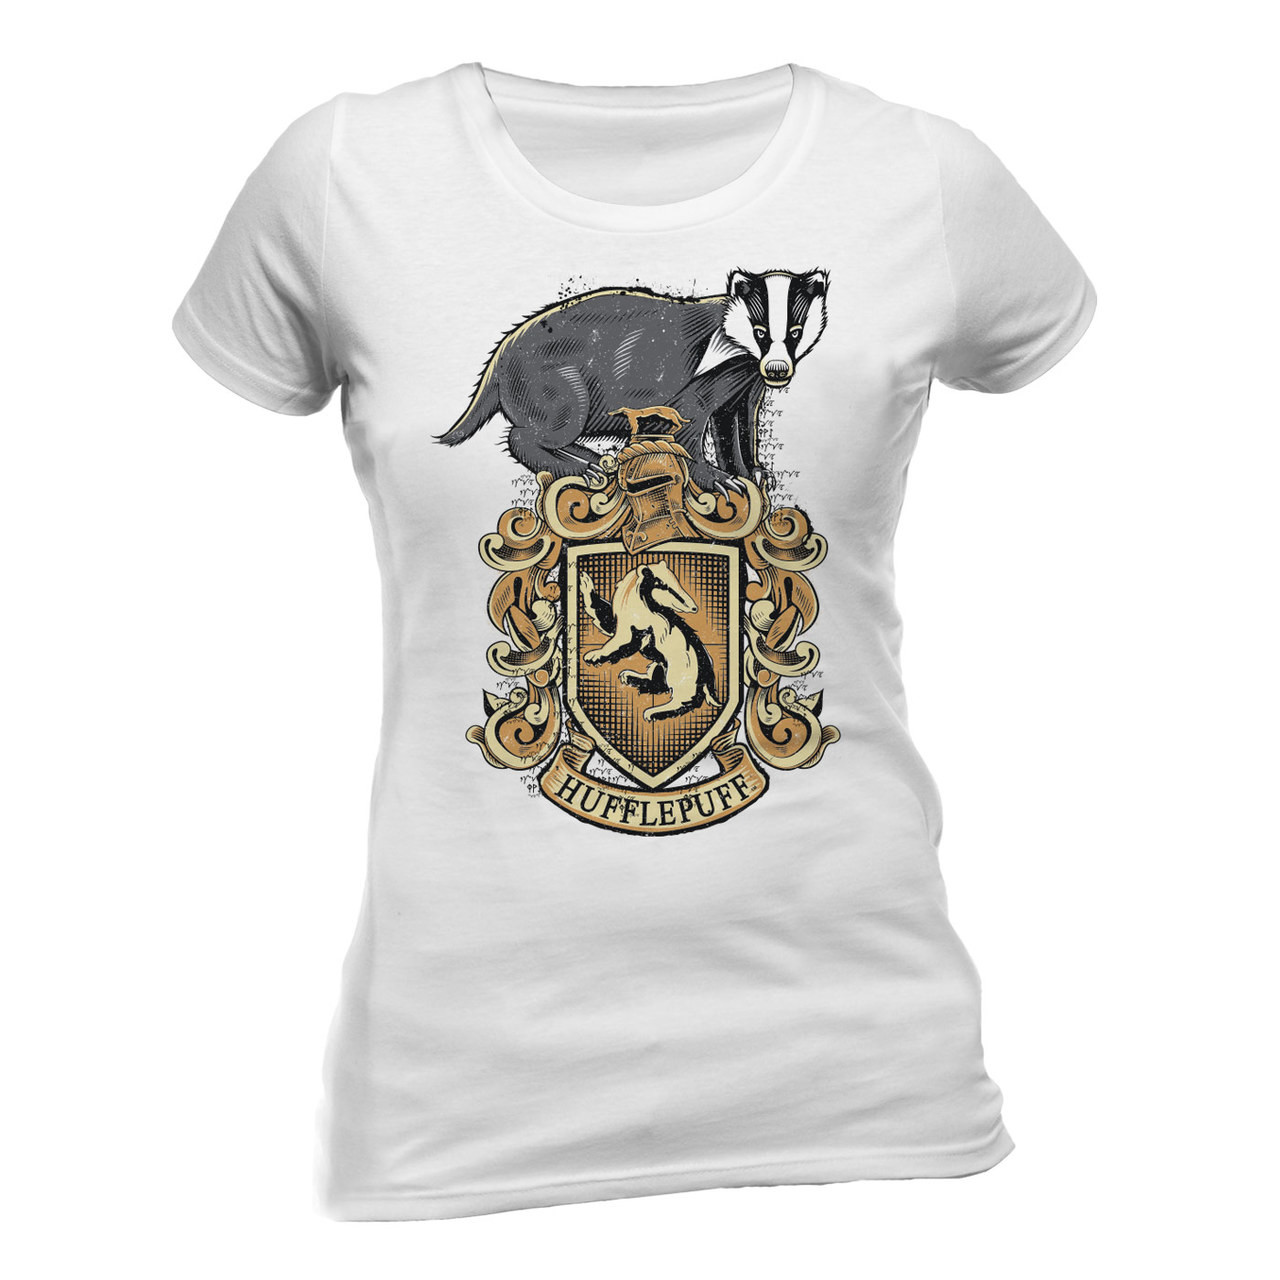 e3d62bff7 Harry Potter Hufflepuff Crest Official Fitted Ladies T-Shirt. Buy ...